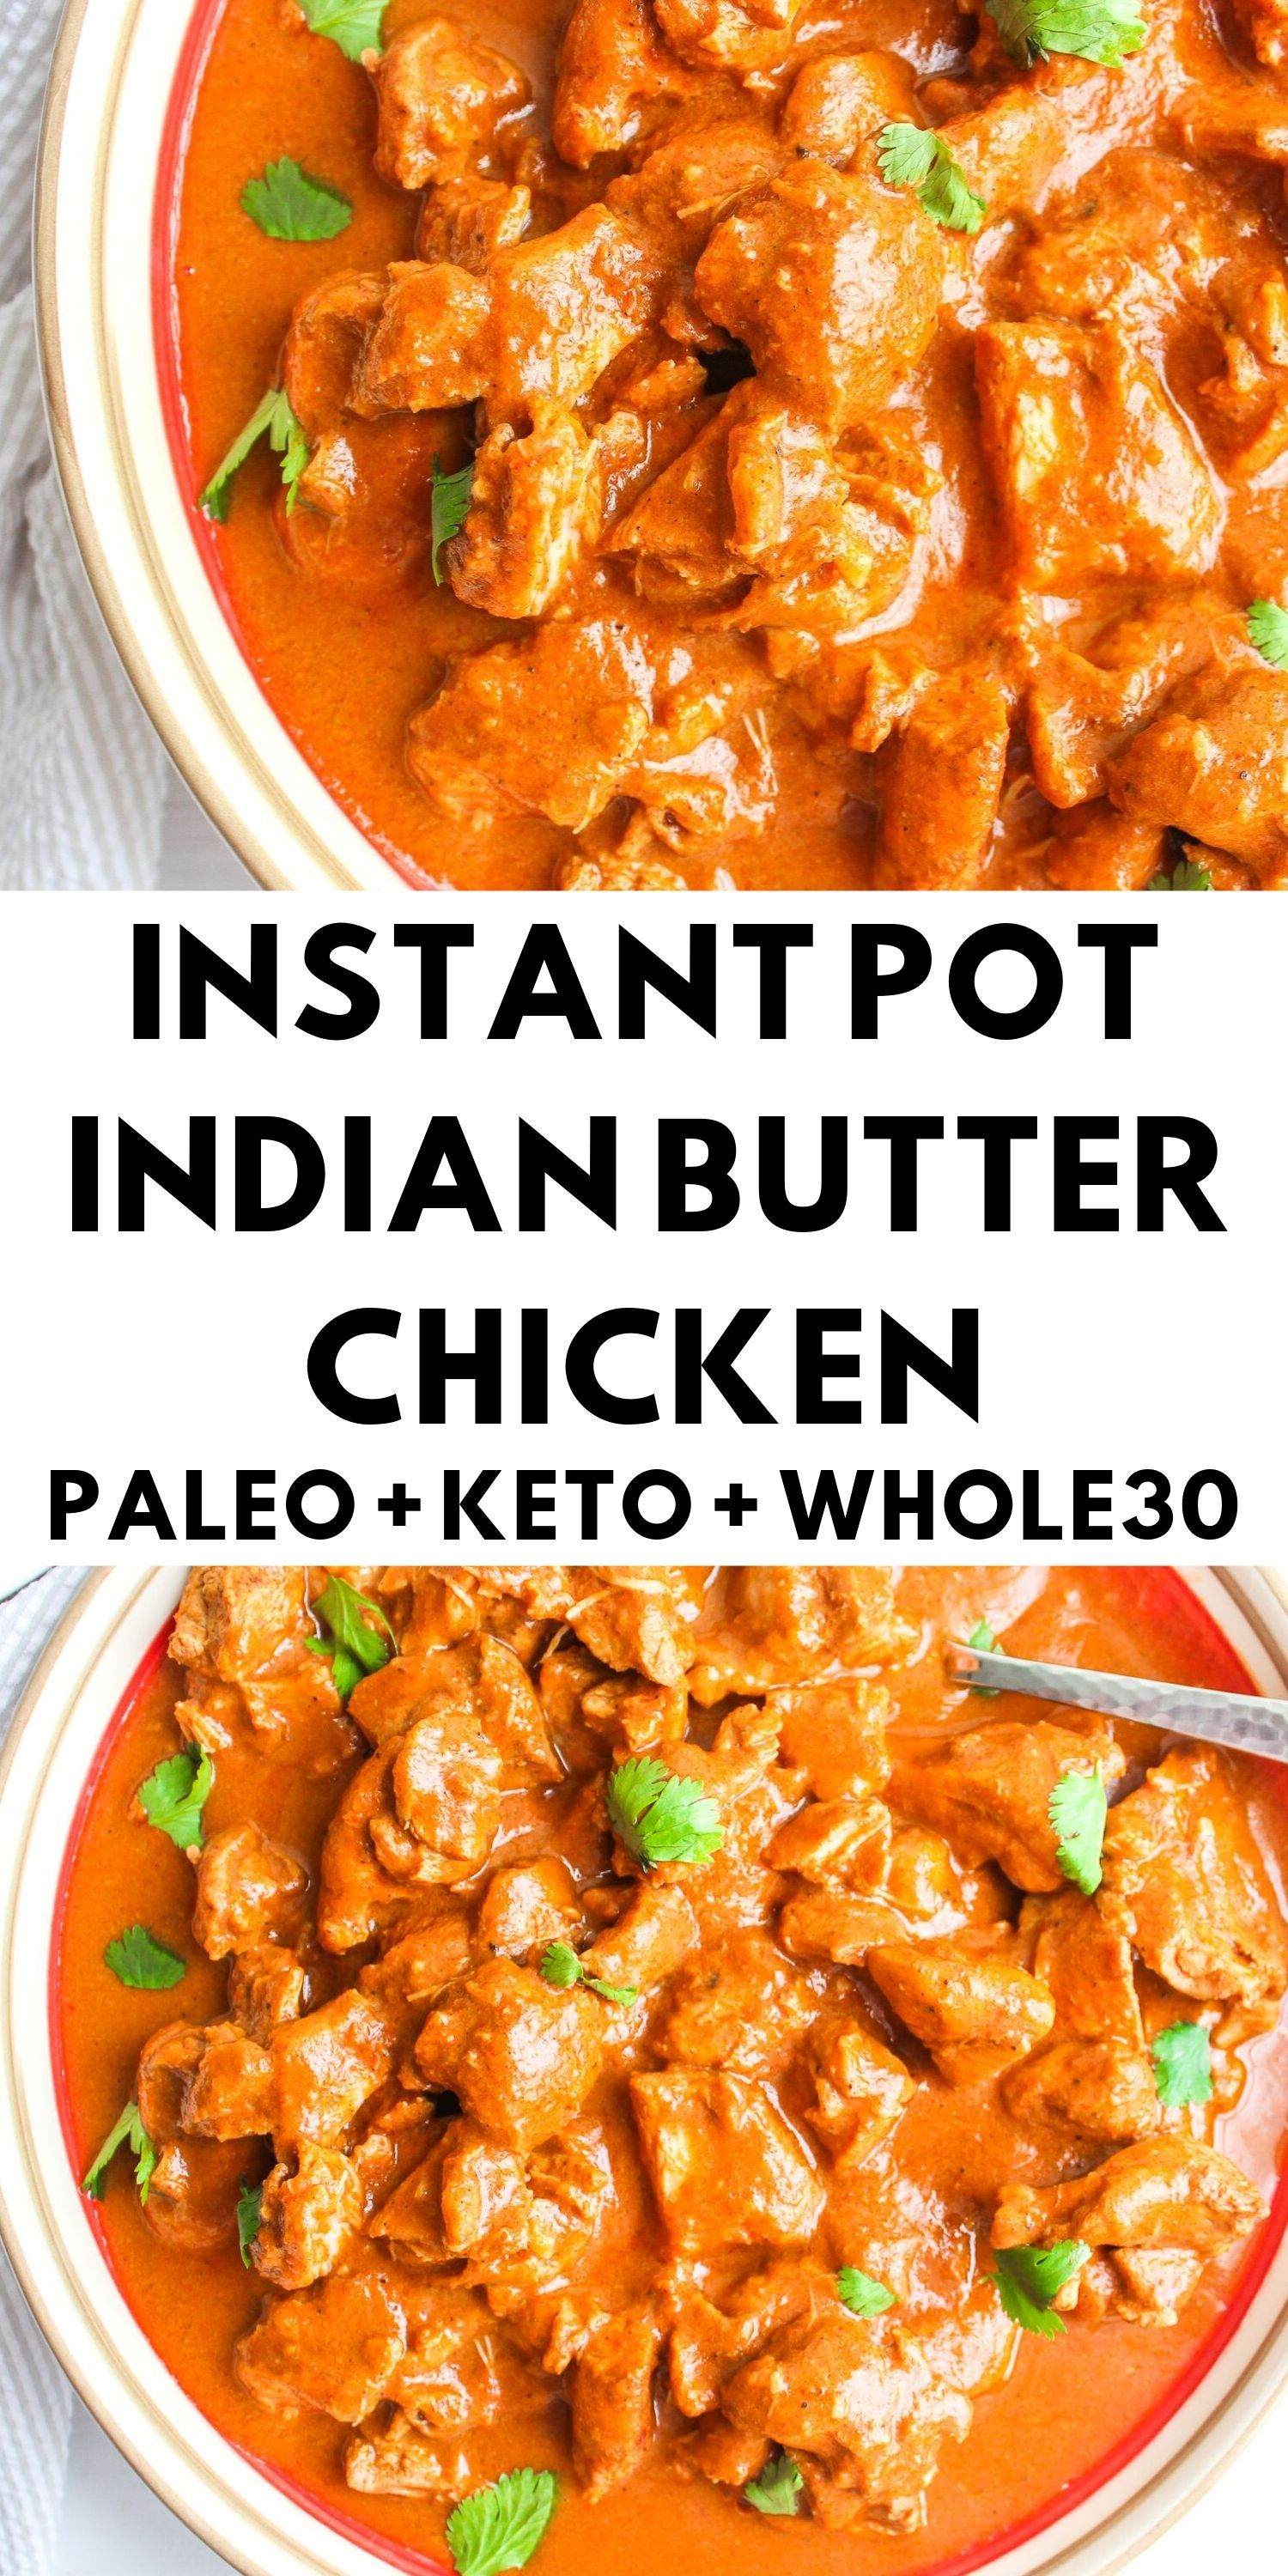 Instant Pot Indian Butter Chicken - Whole 30 - The Bettered Blondie